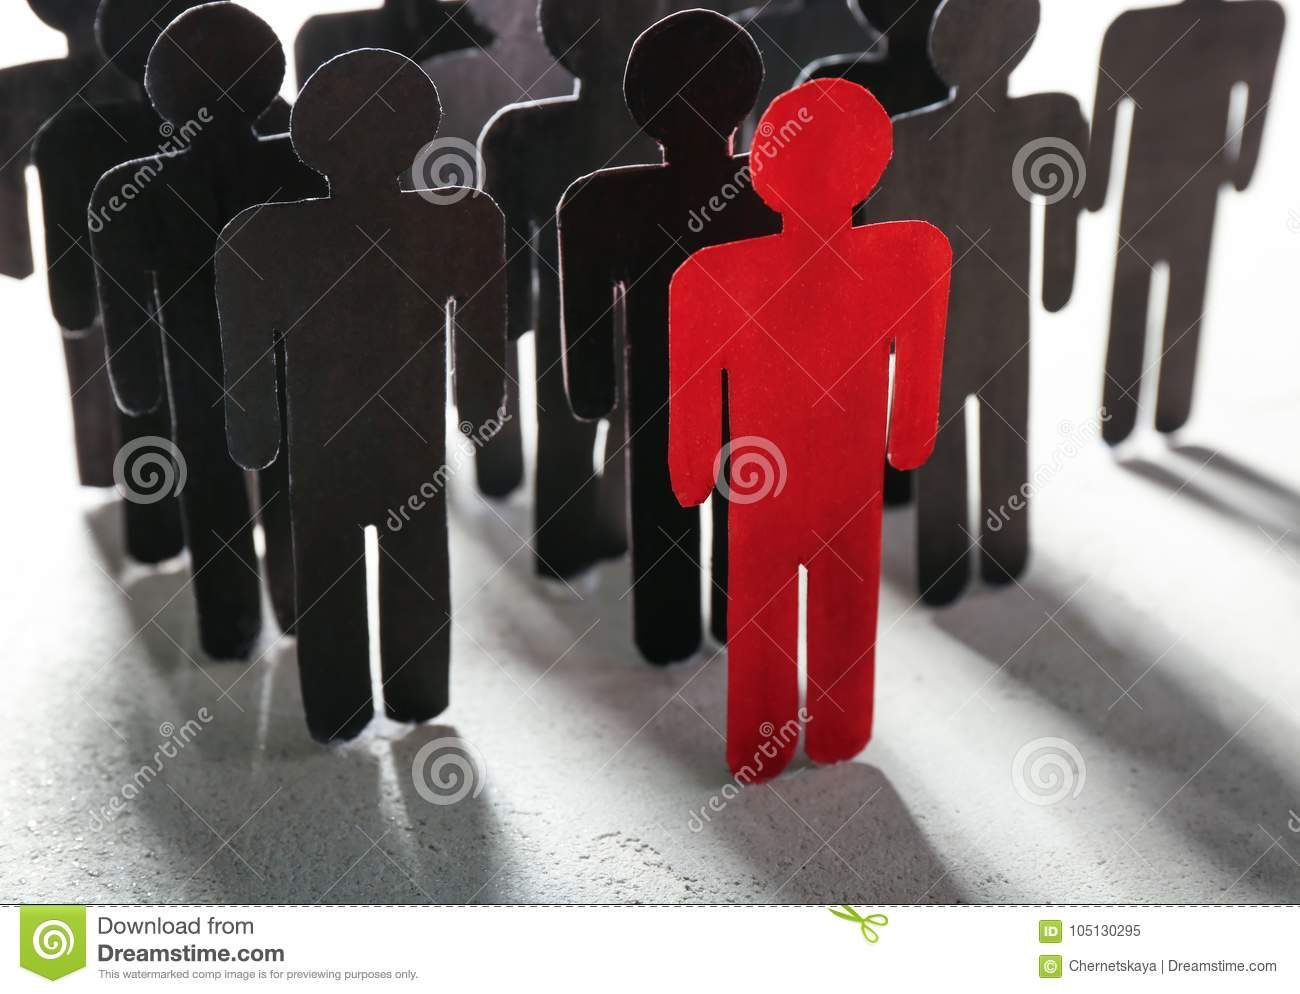 Boss vs leader concept. Crowd of human figures behind red